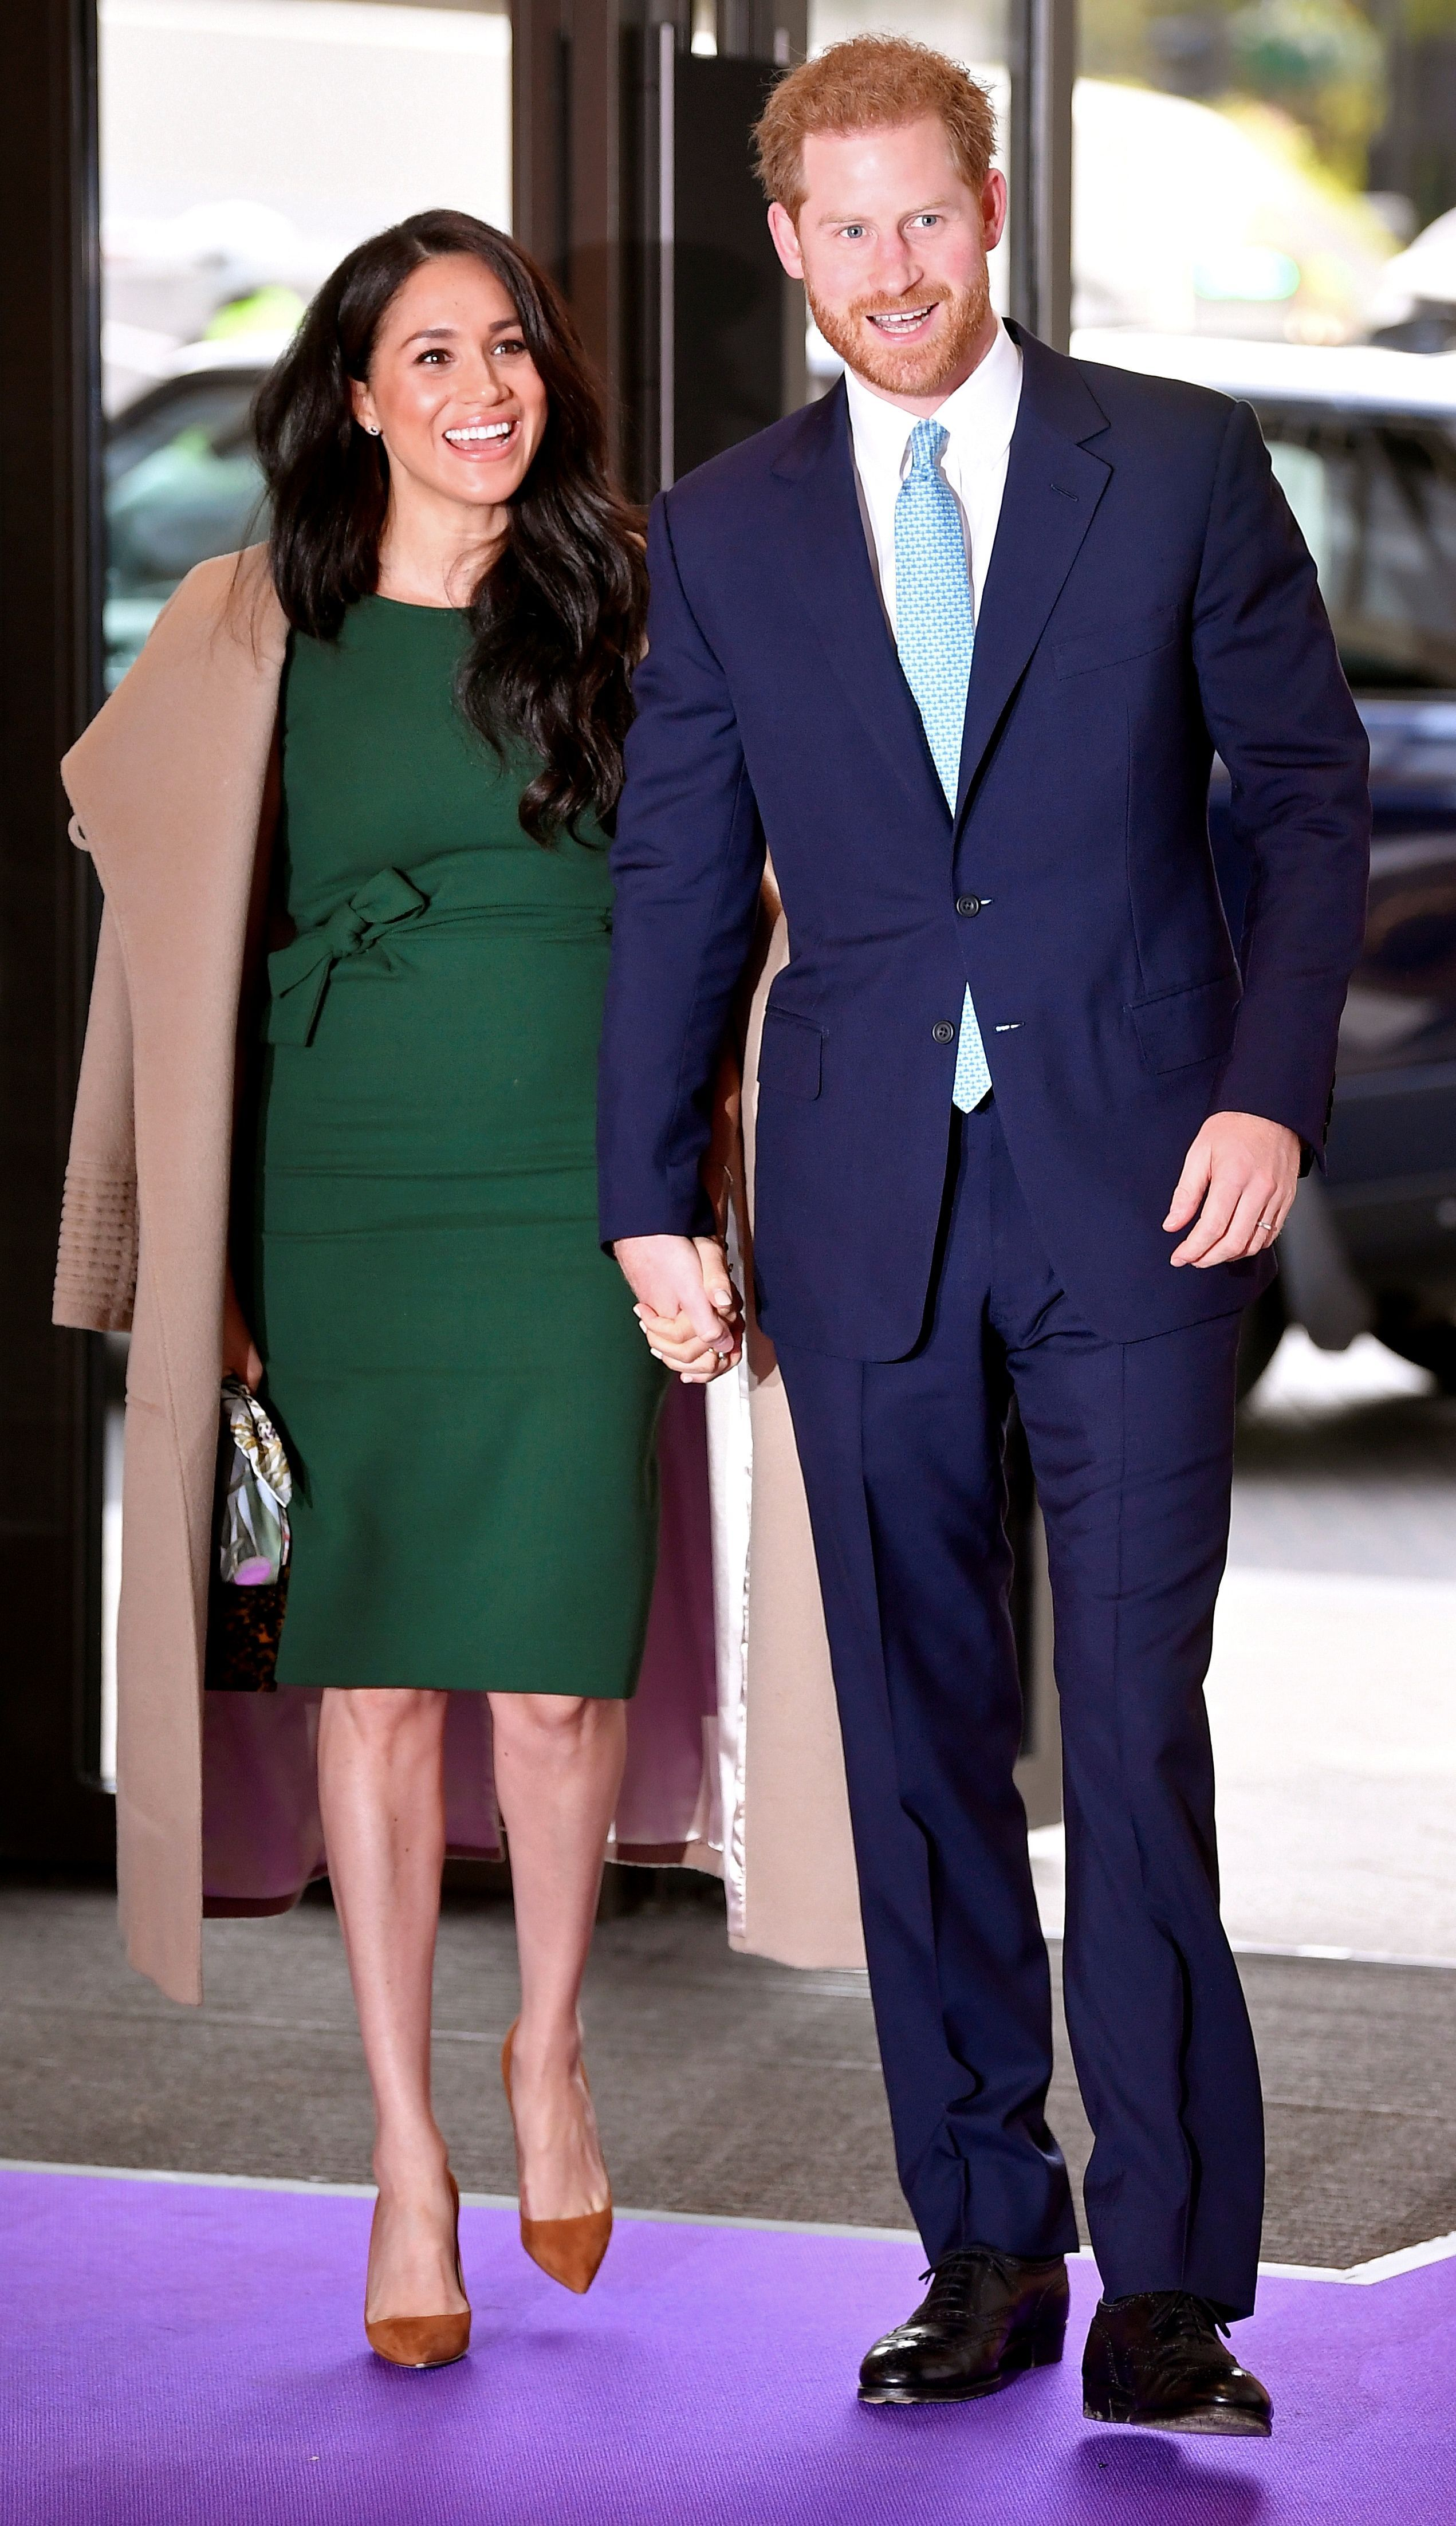 All the Photos of Meghan Markle and Prince Harry at the WellChild Awards